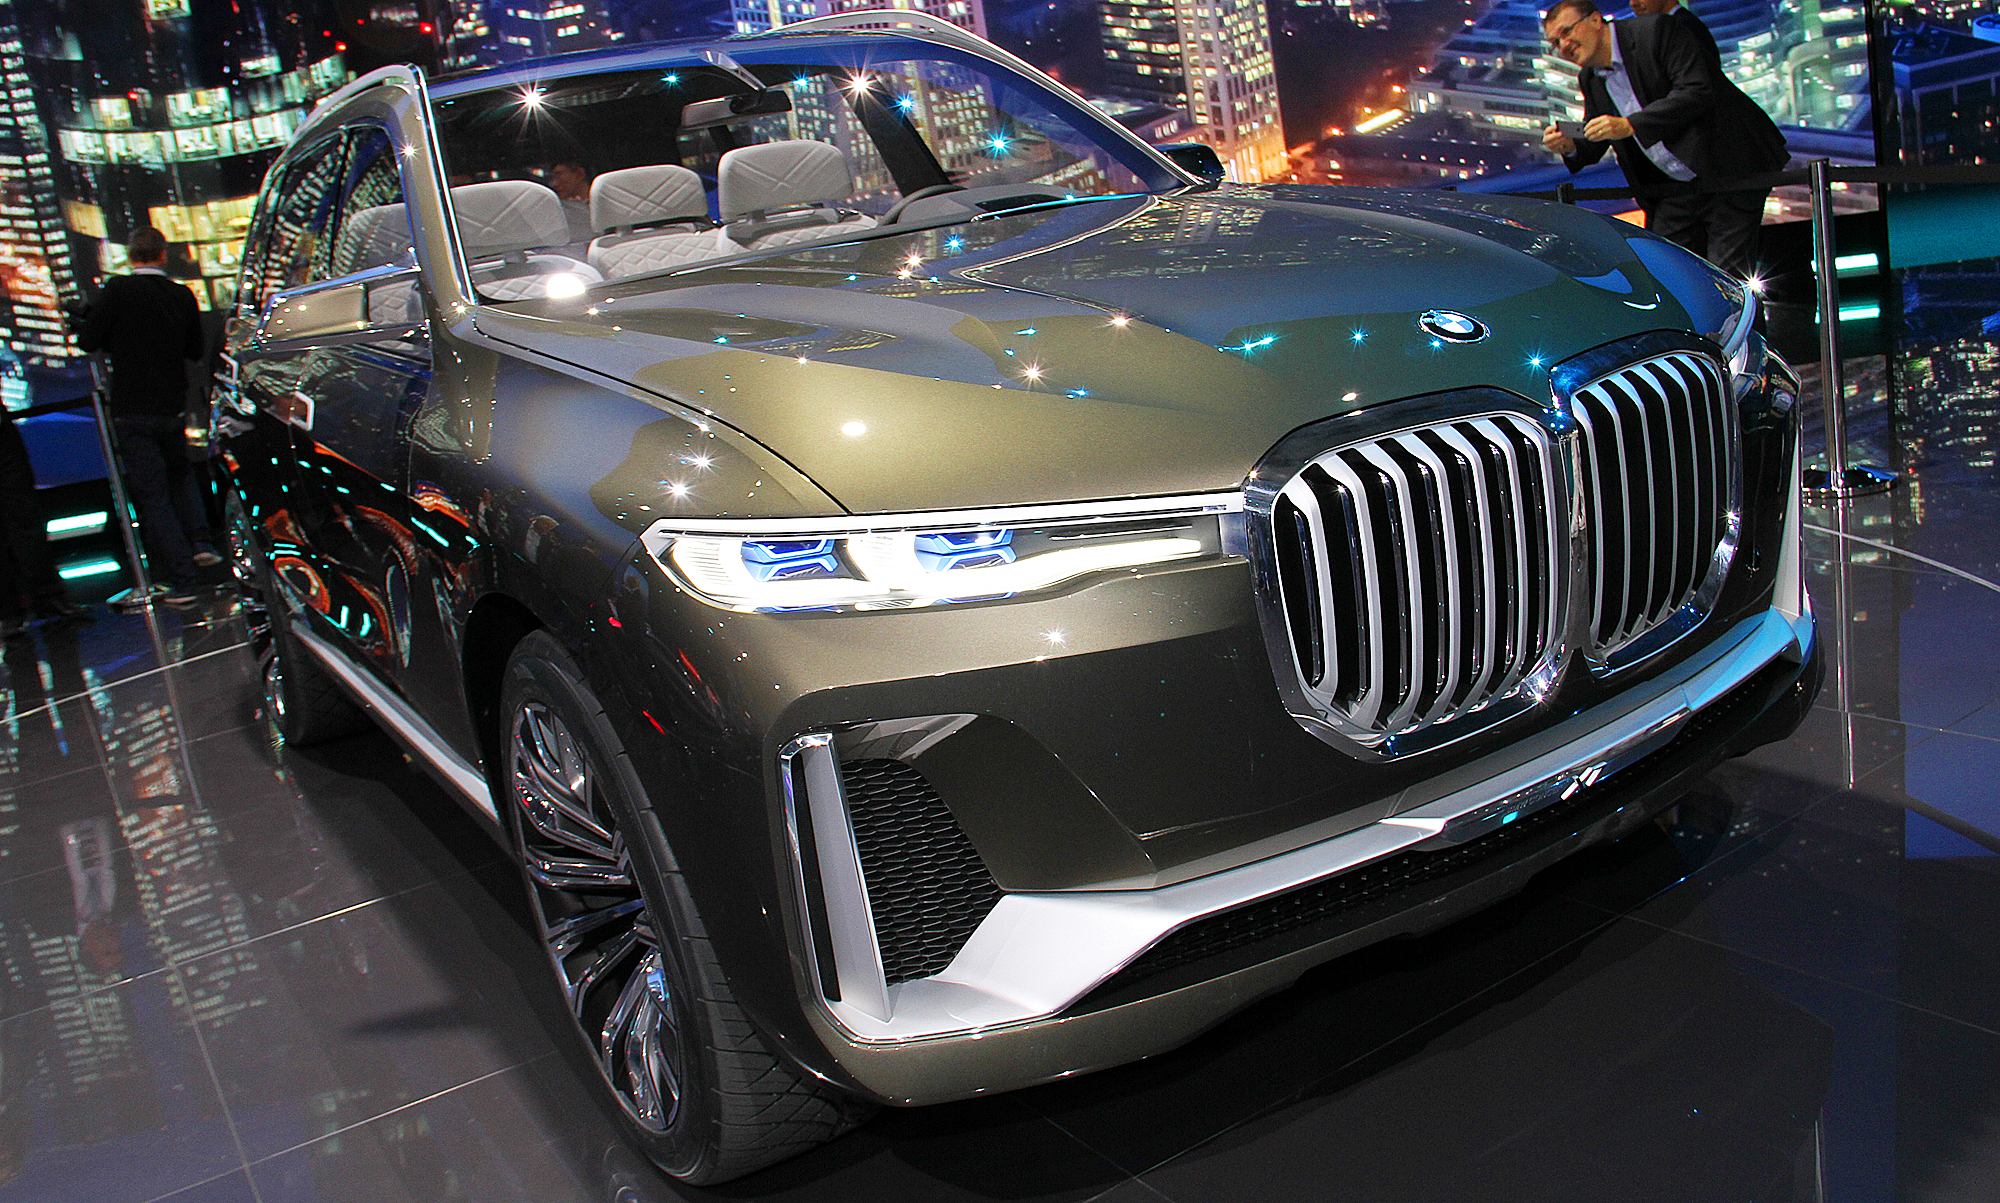 bmw x7 2018 fotos vom iperformance concept g07. Black Bedroom Furniture Sets. Home Design Ideas